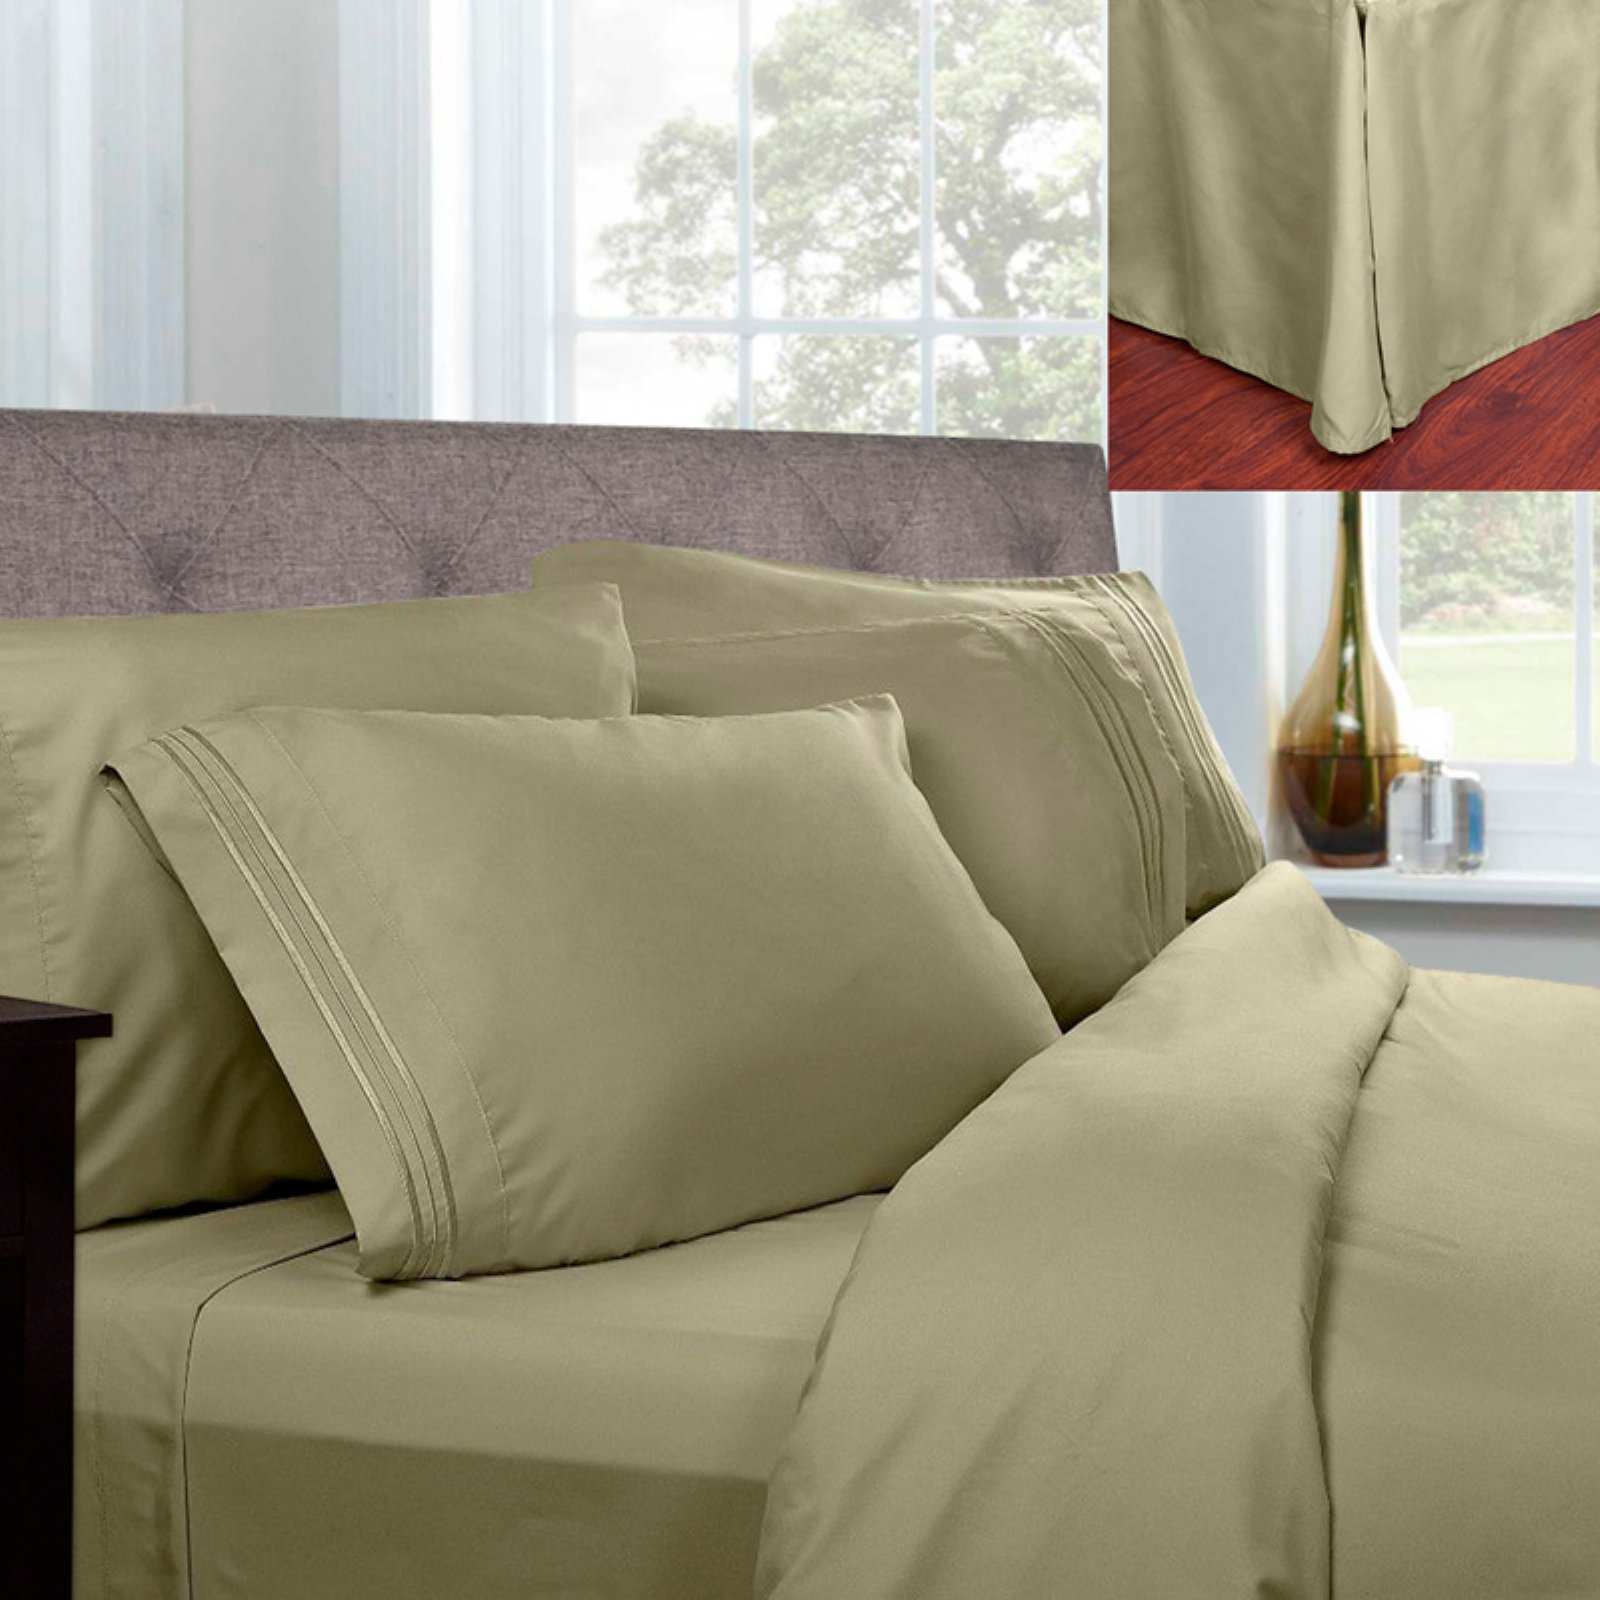 1500 Thread Count Pleated Egyptian Sheet Set with Bed Skirt by Sweet Home Collection